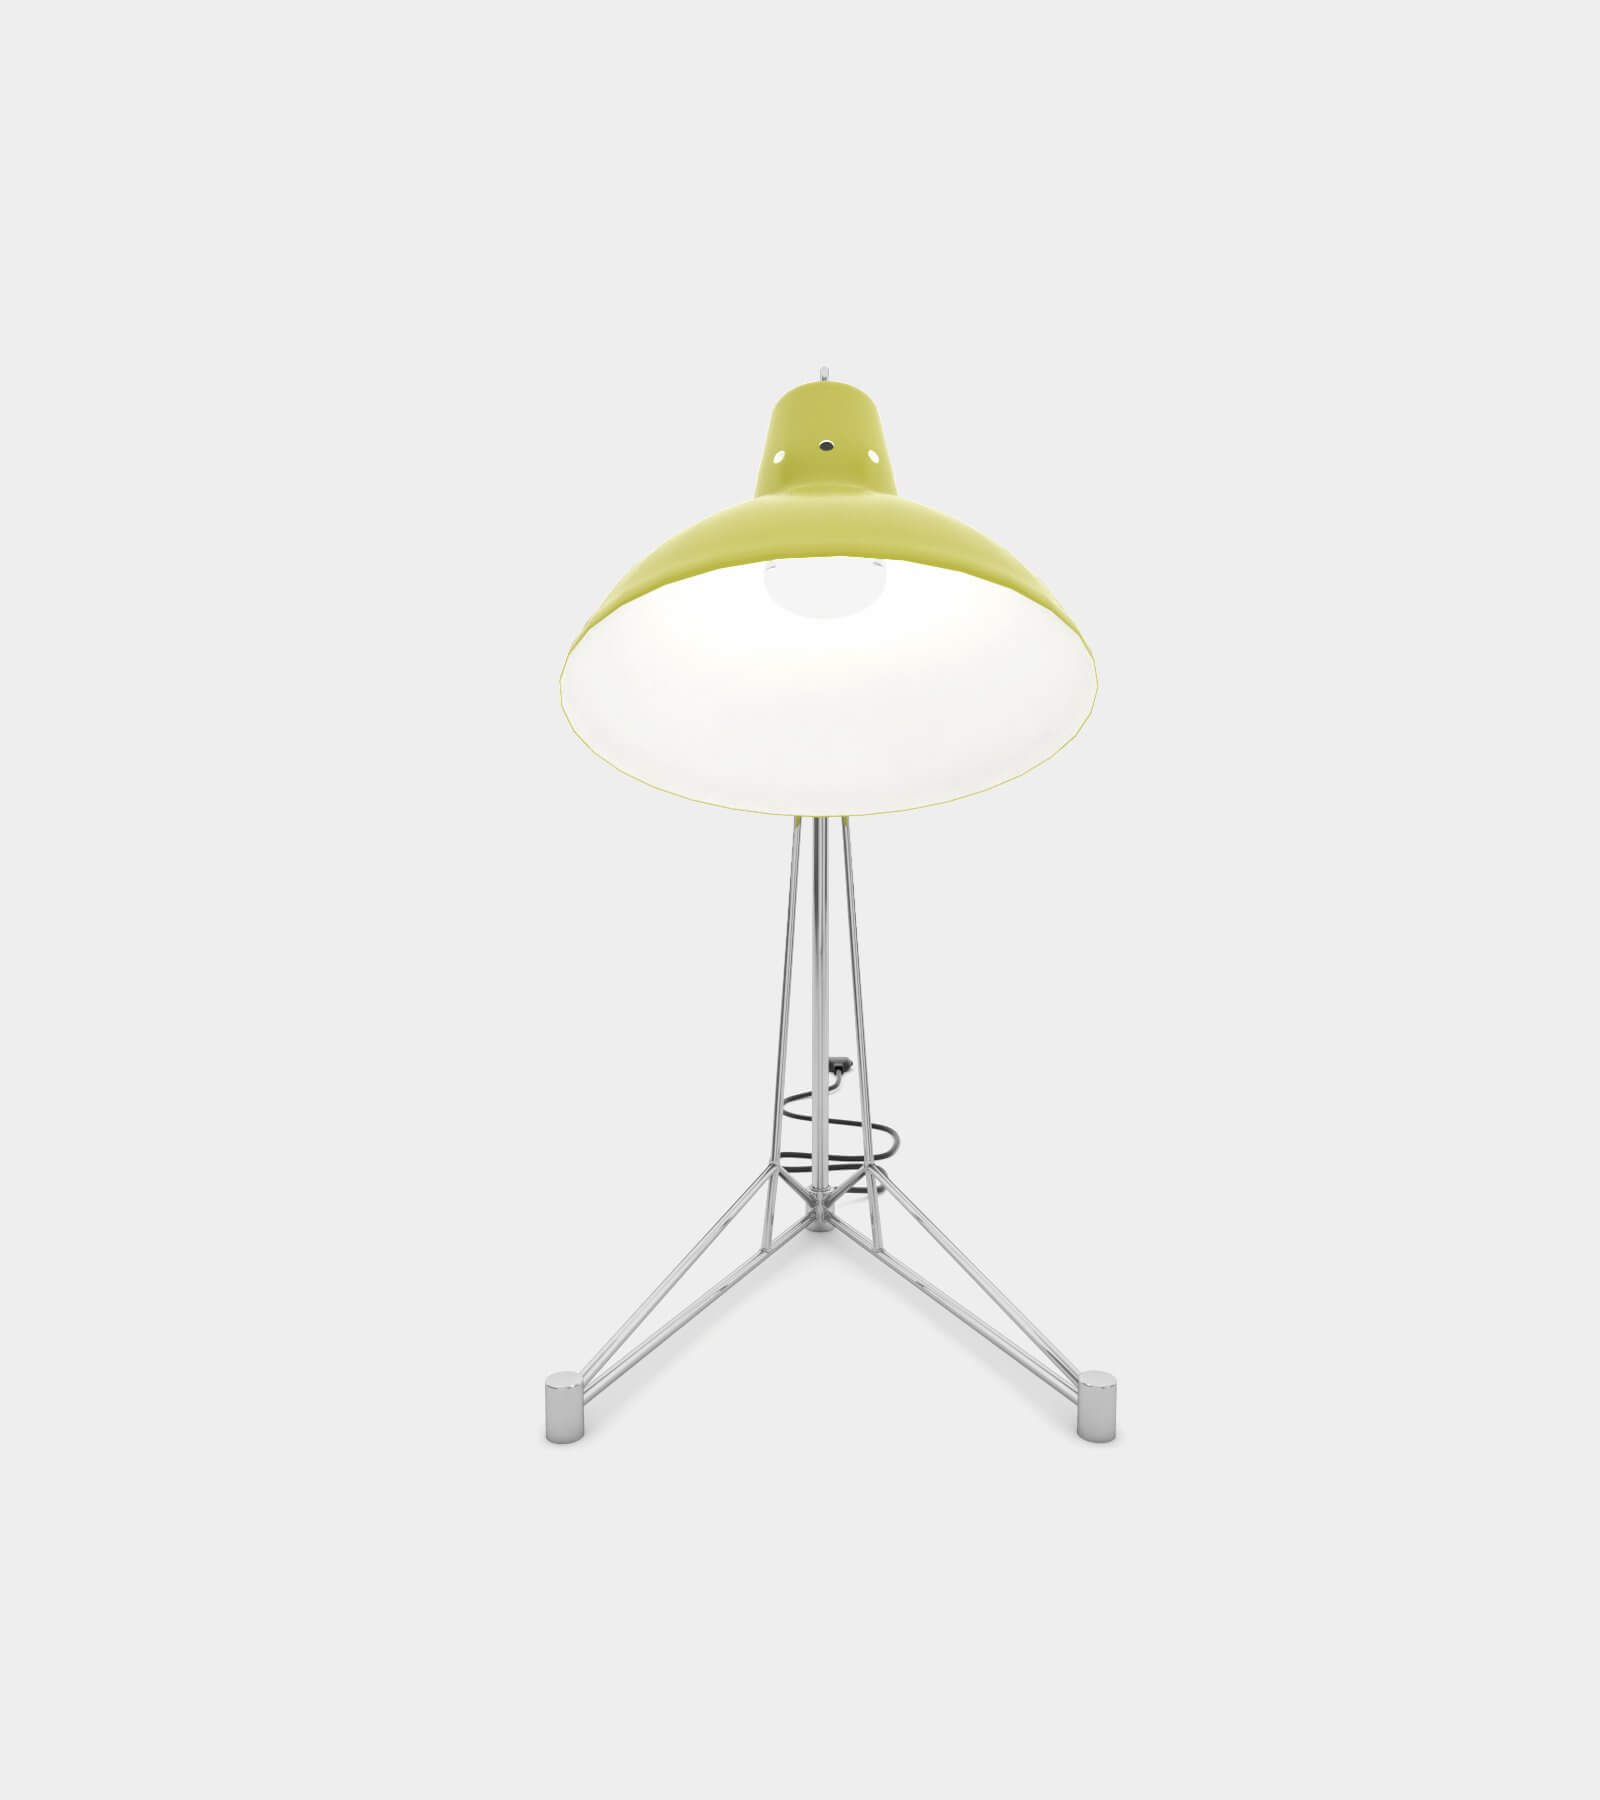 Vintage table lamp 2 - 3D Model